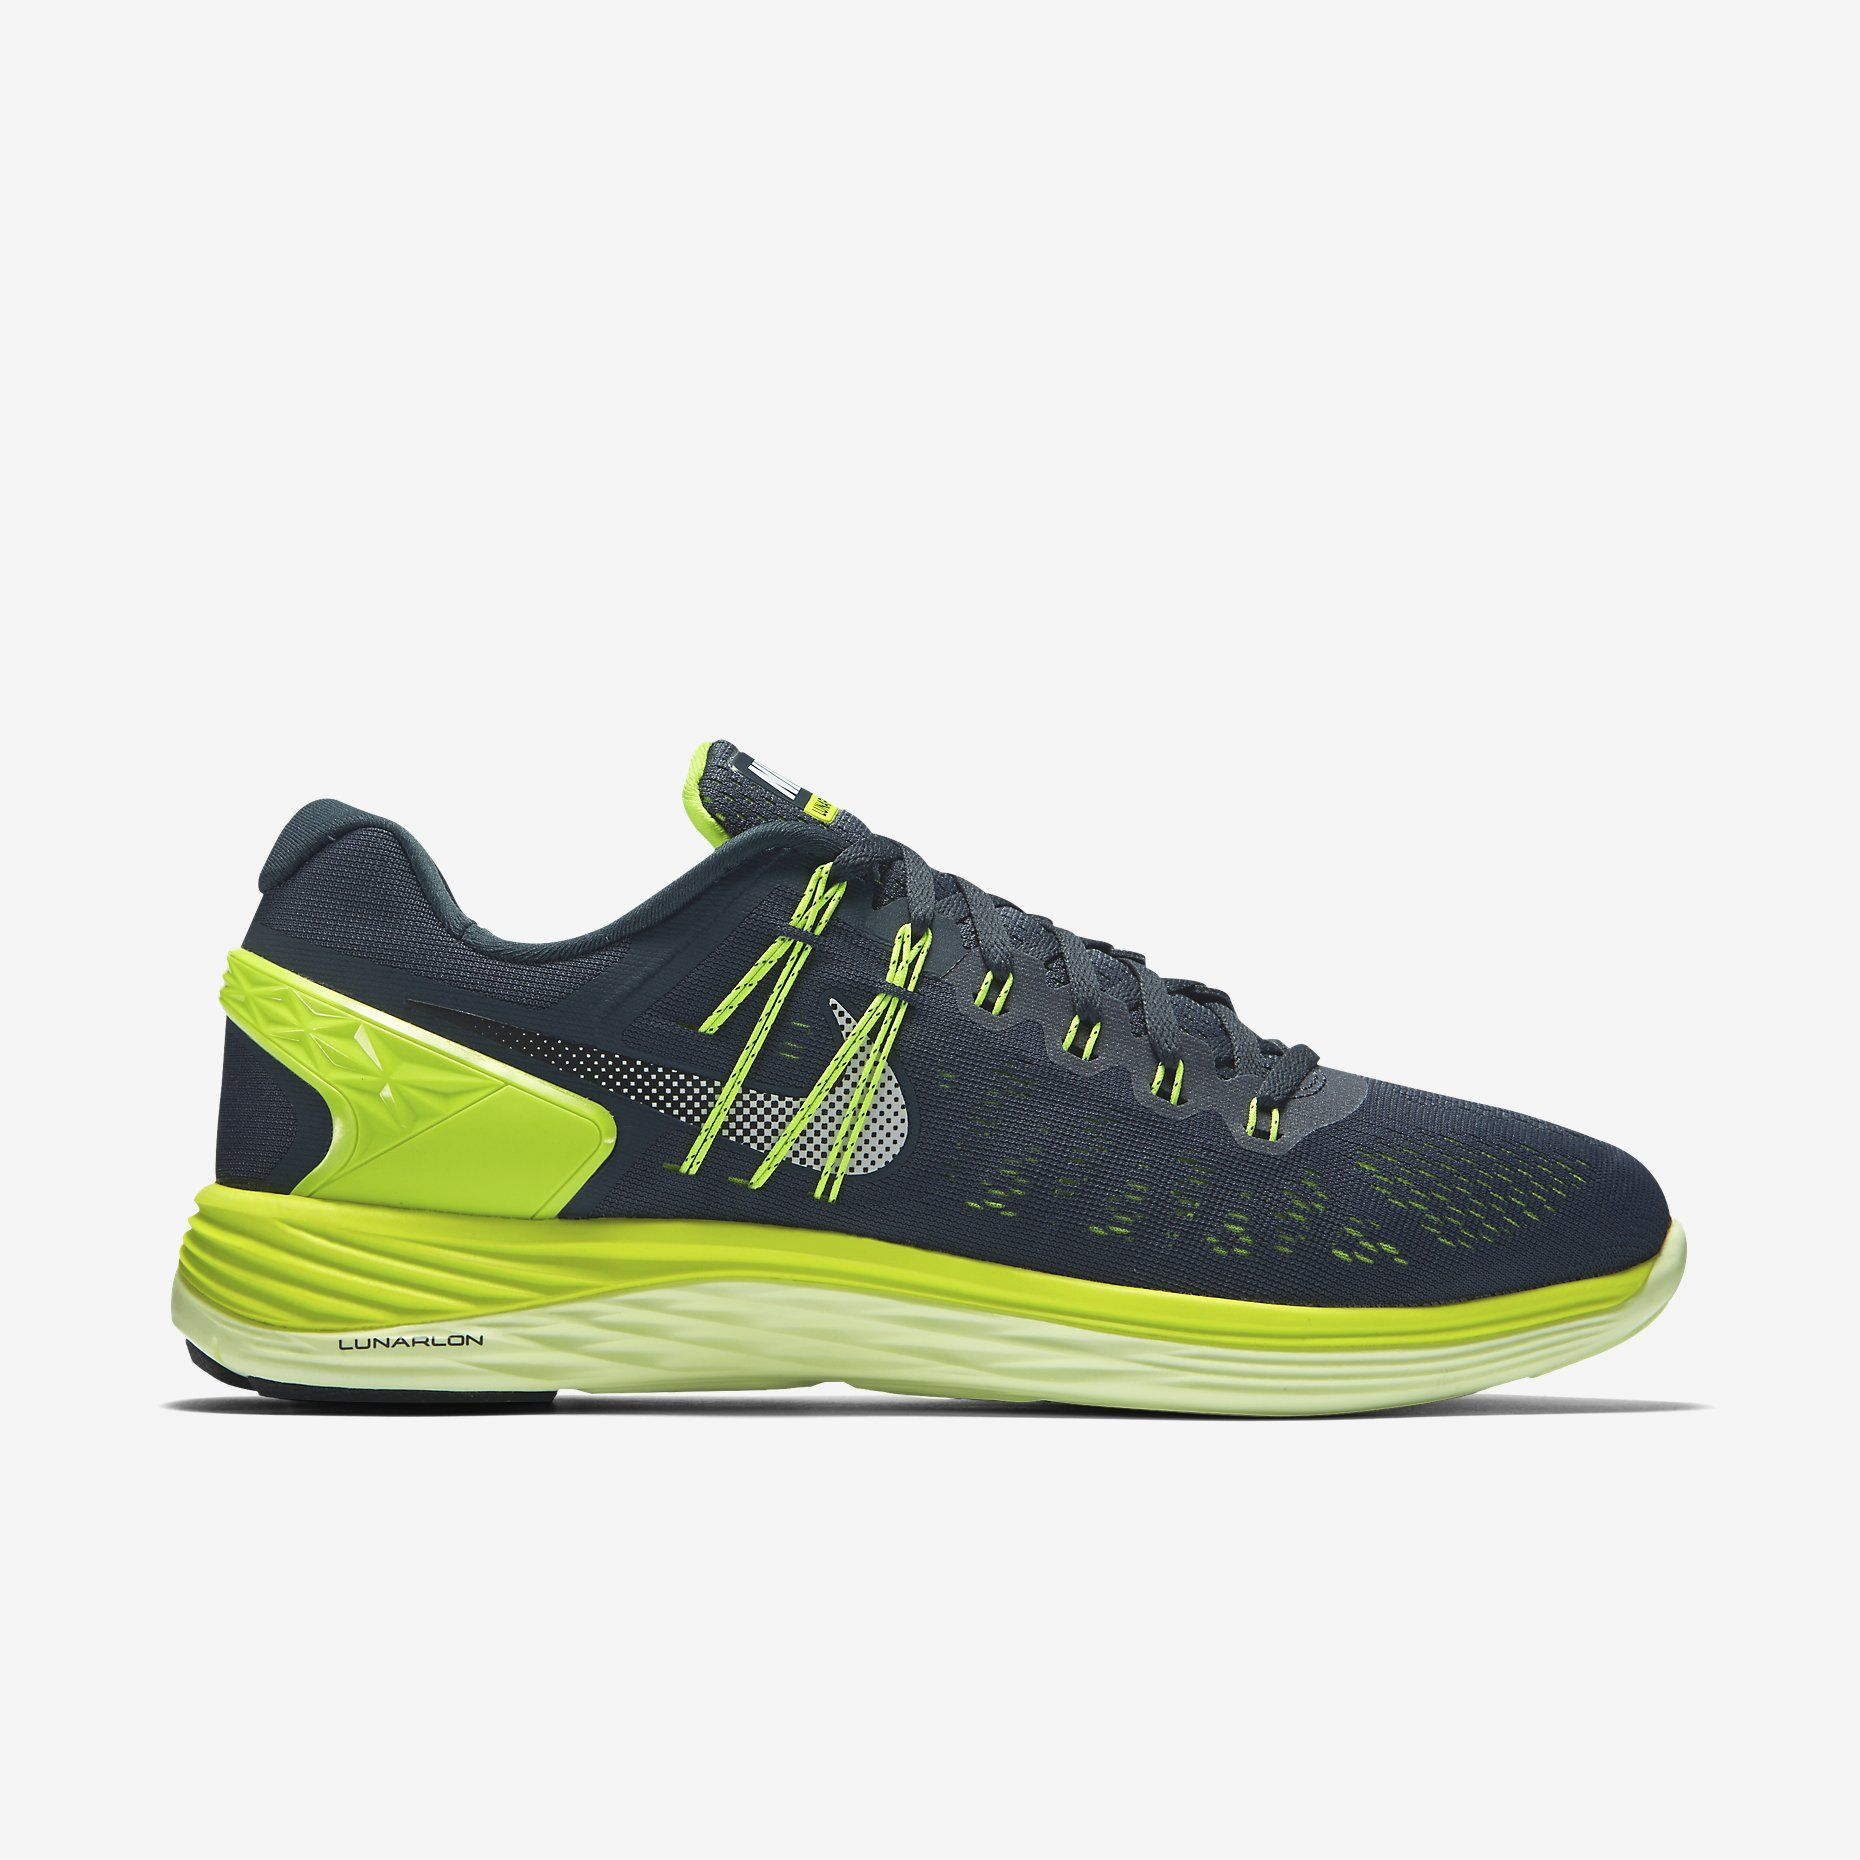 aaa05c5b6a91 Nike LunarEclipse 5 Men s Running Shoe. Nike Store UK